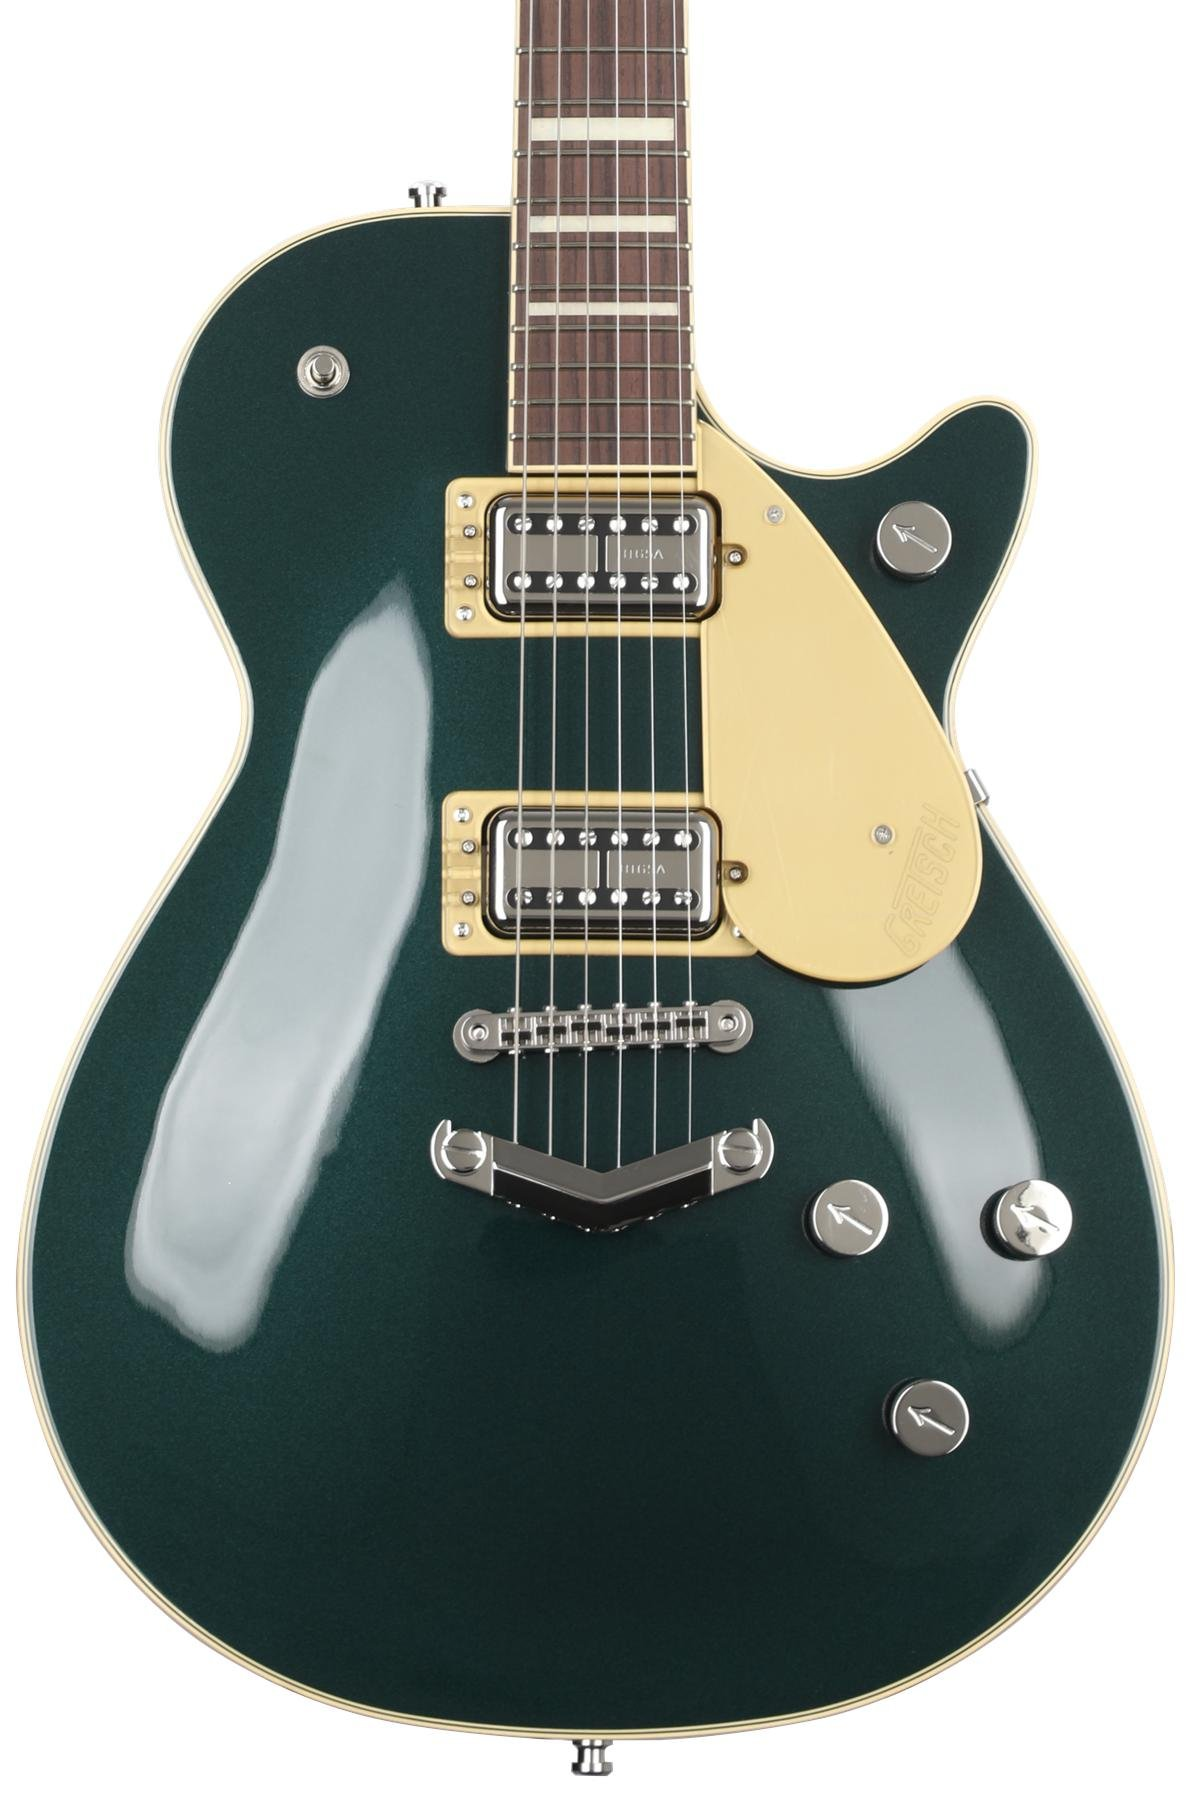 Gretsch G6228 Player's Edition Duo Jet - Cadillac Green Metallic image 1